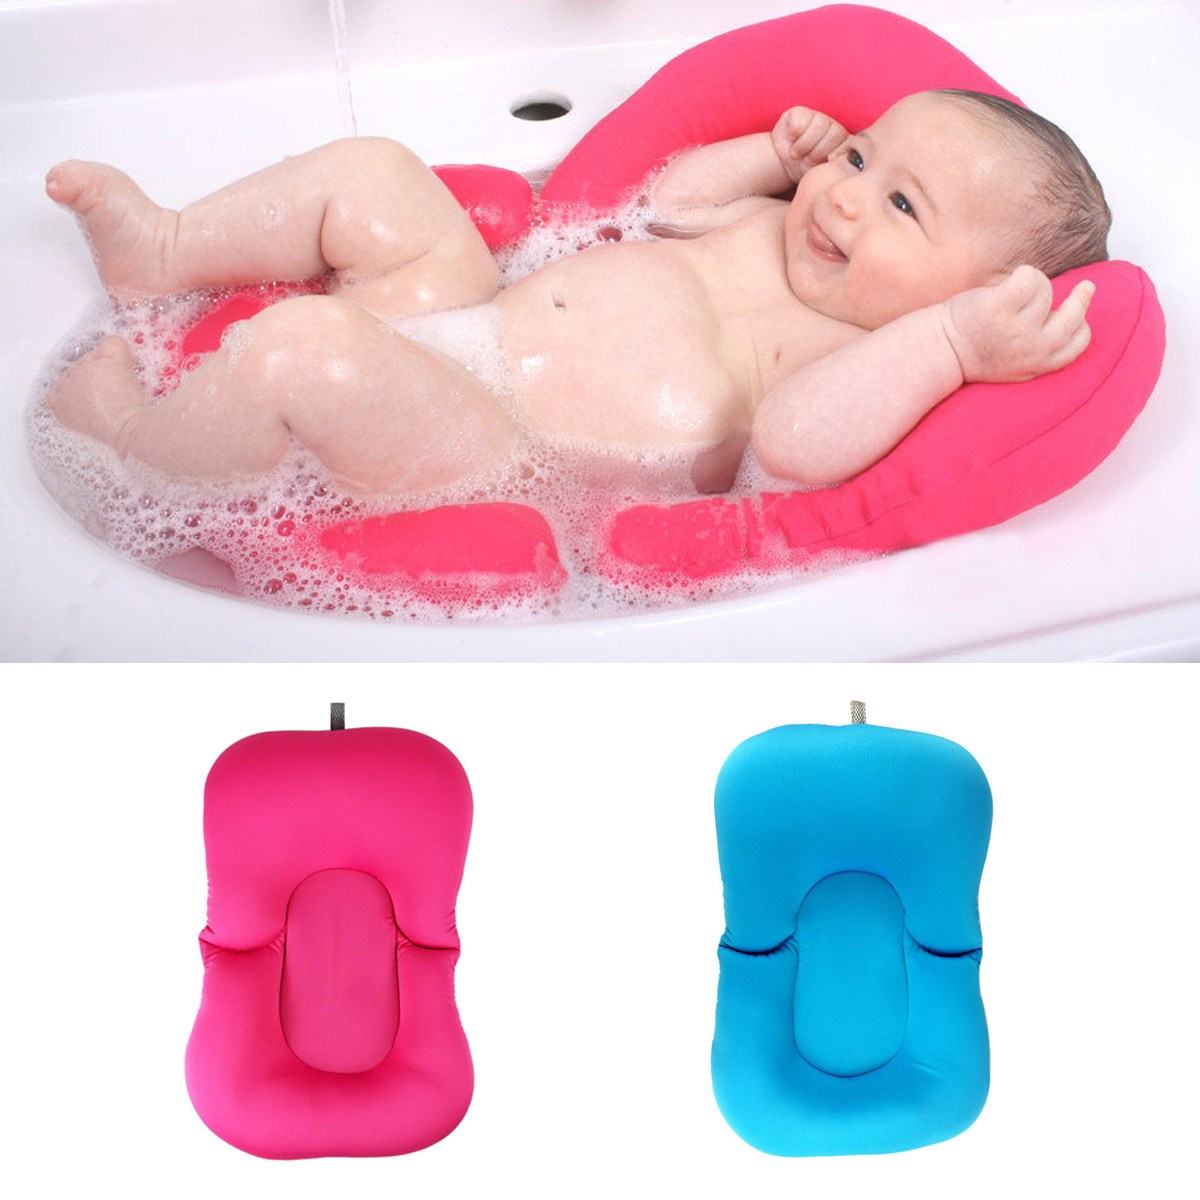 Magic Bath Baby Jacuzzi.Us 14 59 39 Off Hot Sales Newborn Baby Bath Tub Pillow Pad Infant Lounger Air Cushion Floating Soft Seat Bathtub Support For Kids Childern In Baby